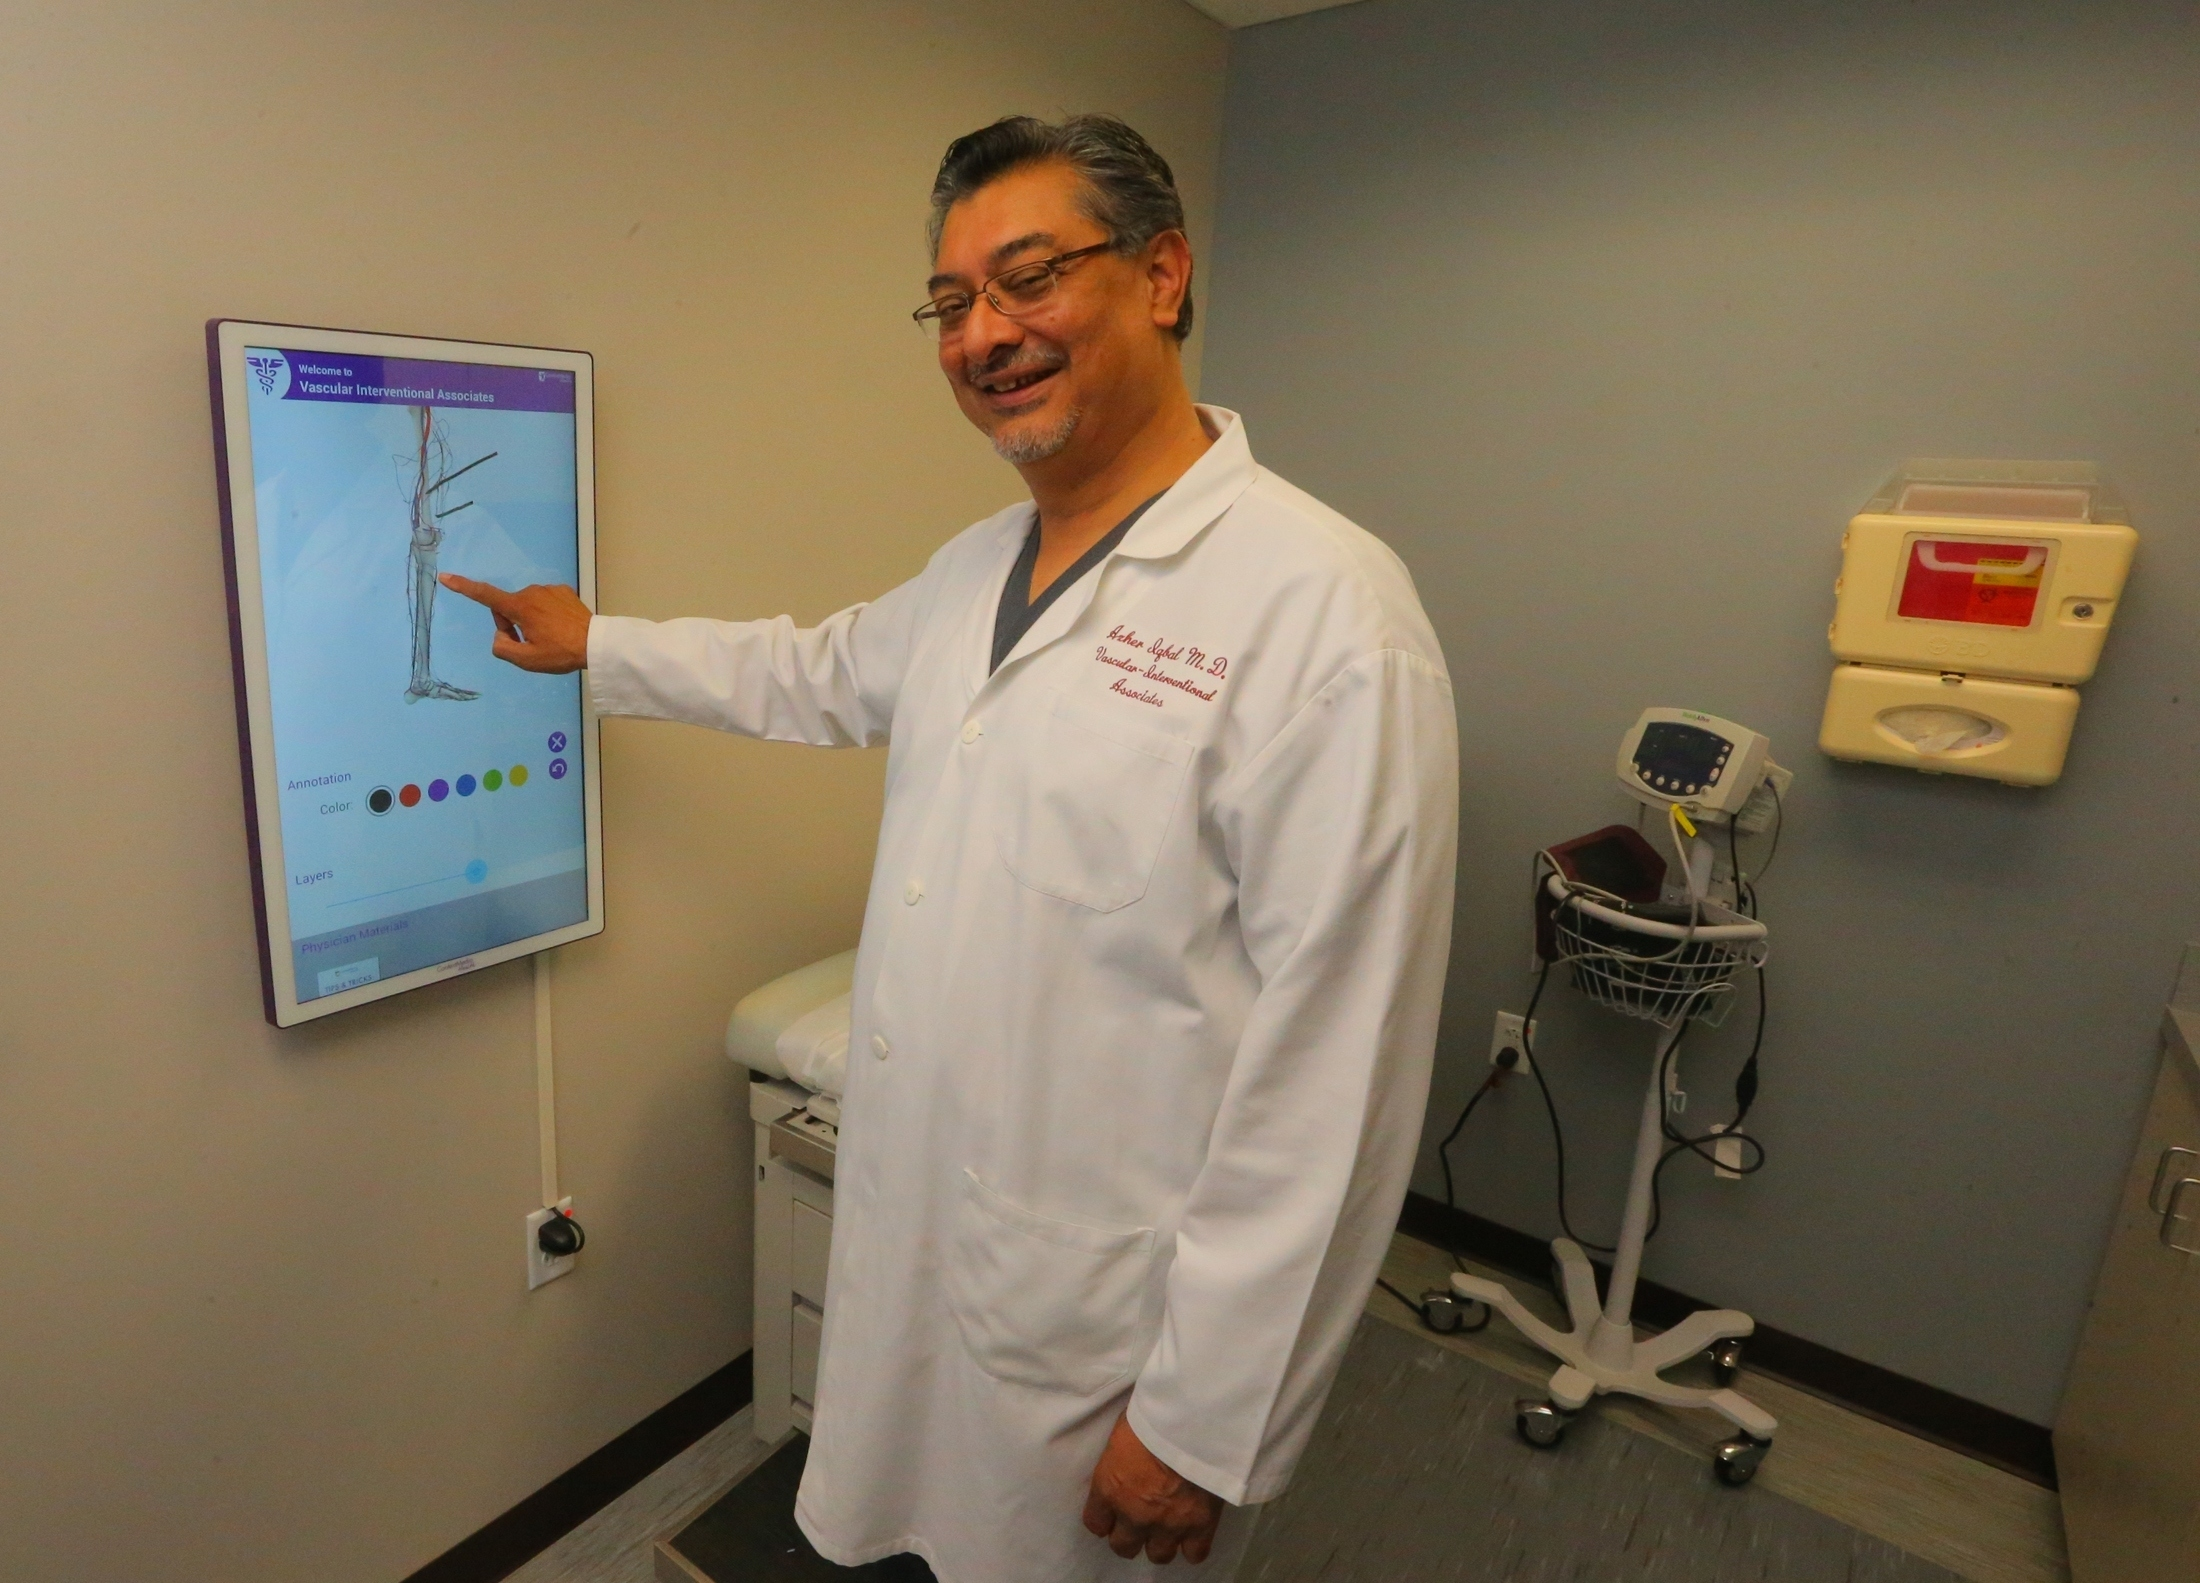 """""""It used to be that with other methods, treatment of ulcers might last months, maybe even years. This way, patients can get better in a matter of a few weeks, depending on the severity of their wound."""" Dr. Azher Iqbal, demonstarting a touch-screen """"anatomy board."""""""